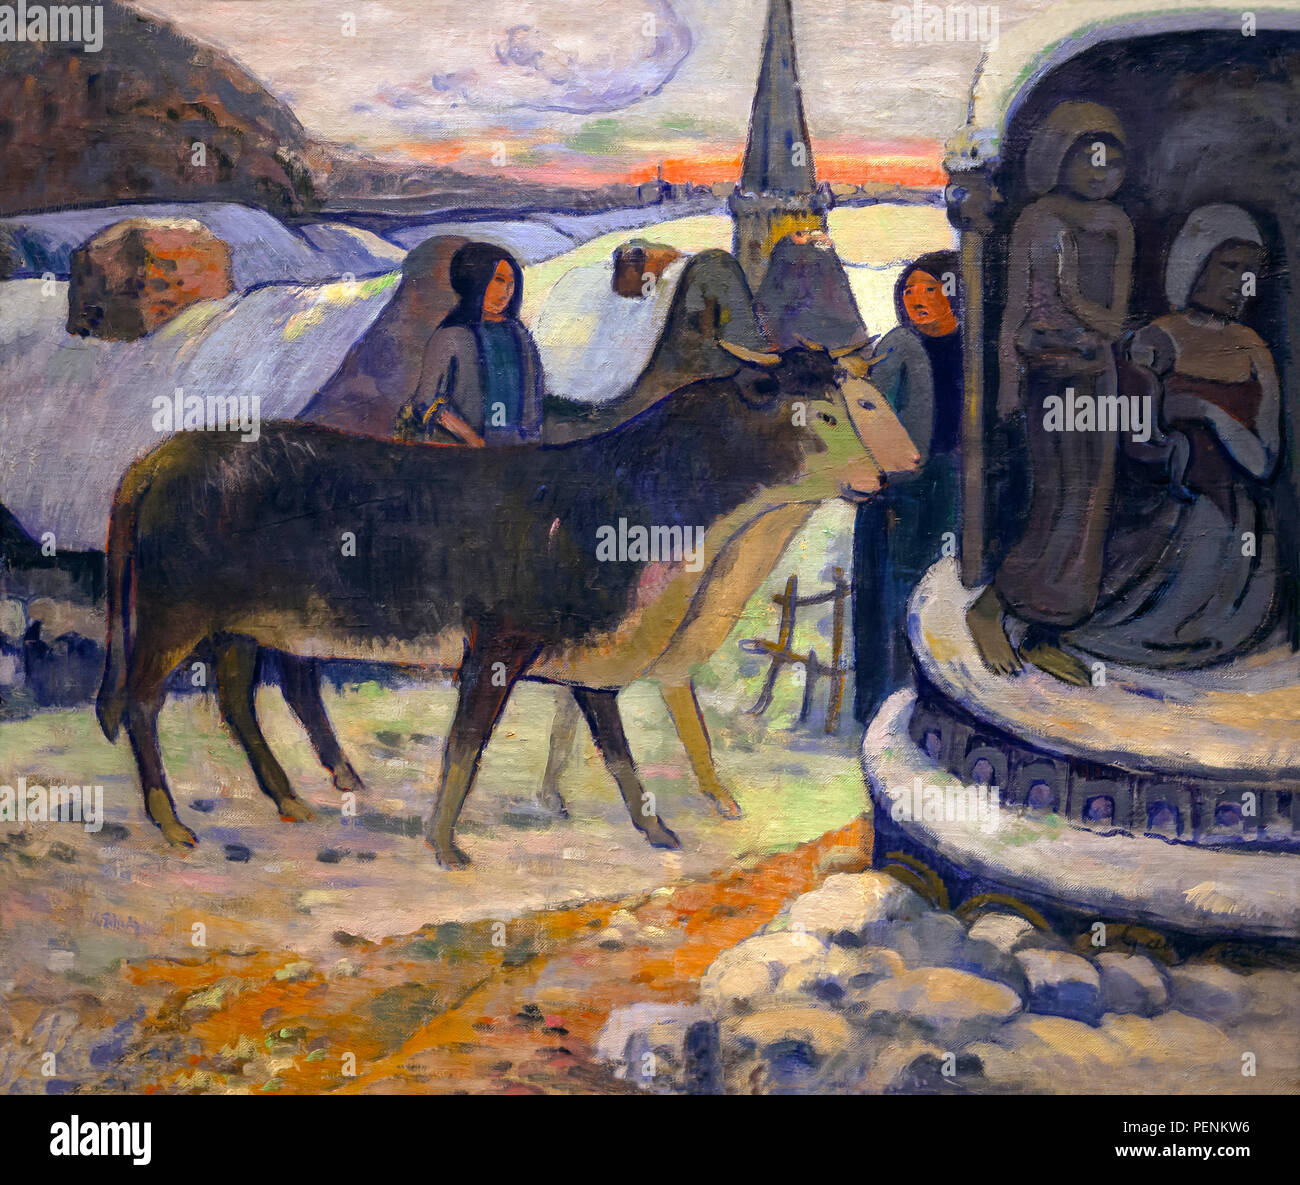 Christmas Night, The Blessing of the Oxen, Paul Gauguin, circa 1894, Indianapolis Museum of Art, Indianapolis, Indiana, USA, North America - Stock Image